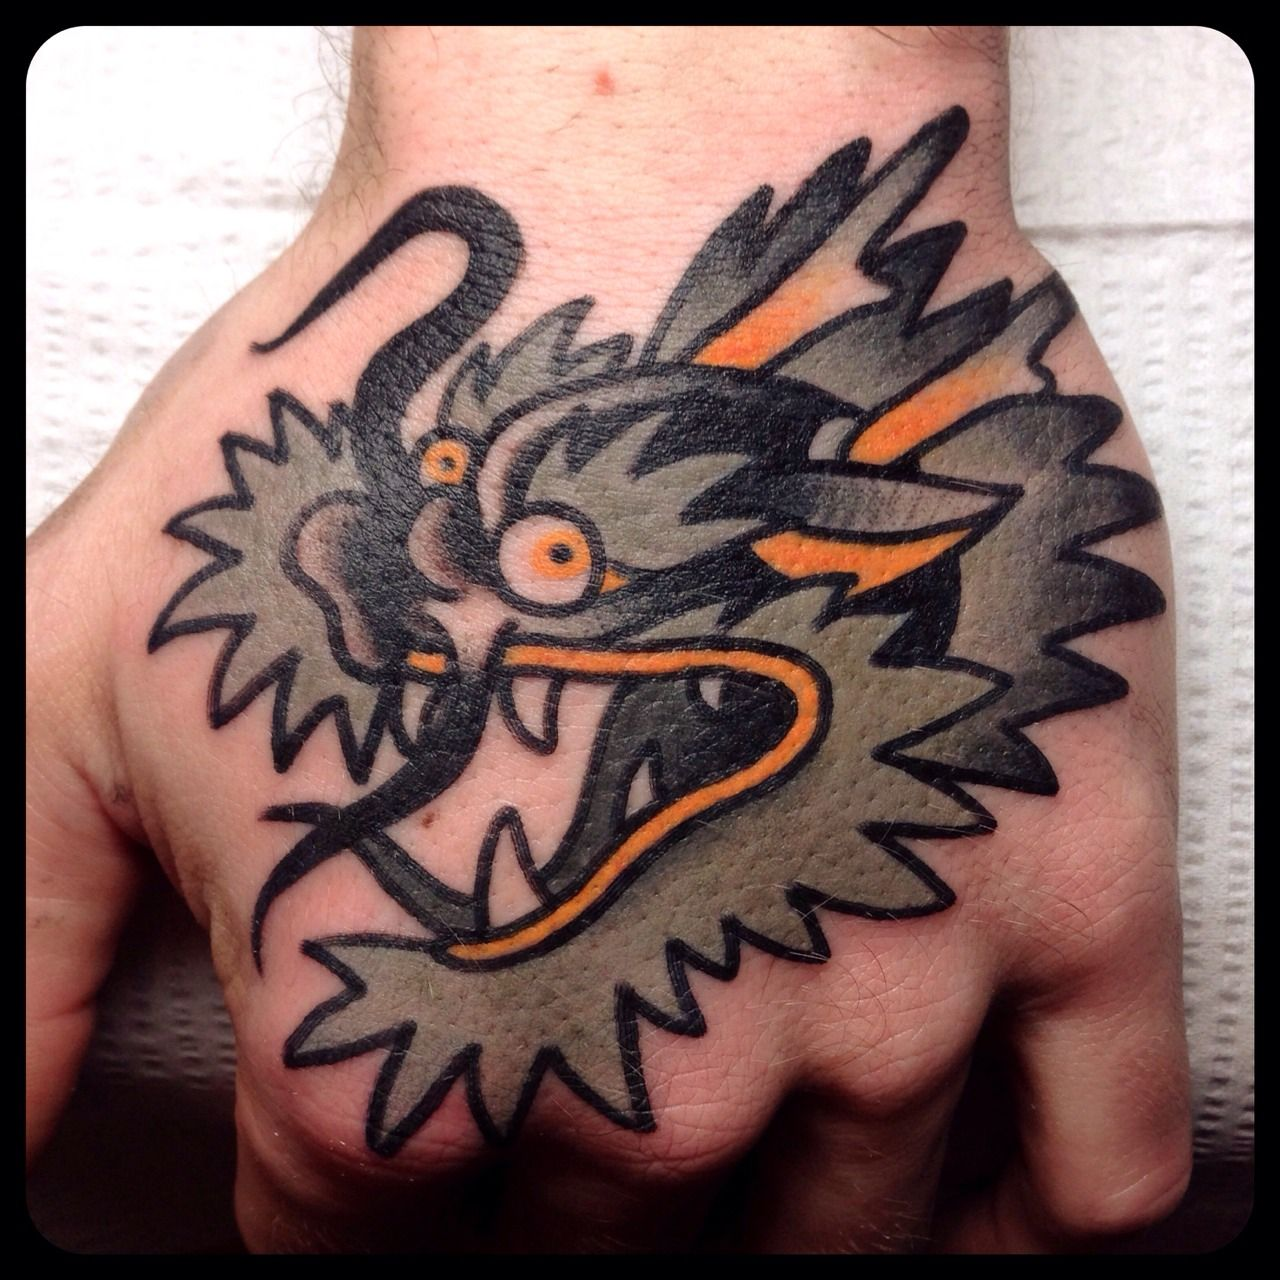 Antonio roque black label tattoo co frederick maryland for Tattoo frederick md